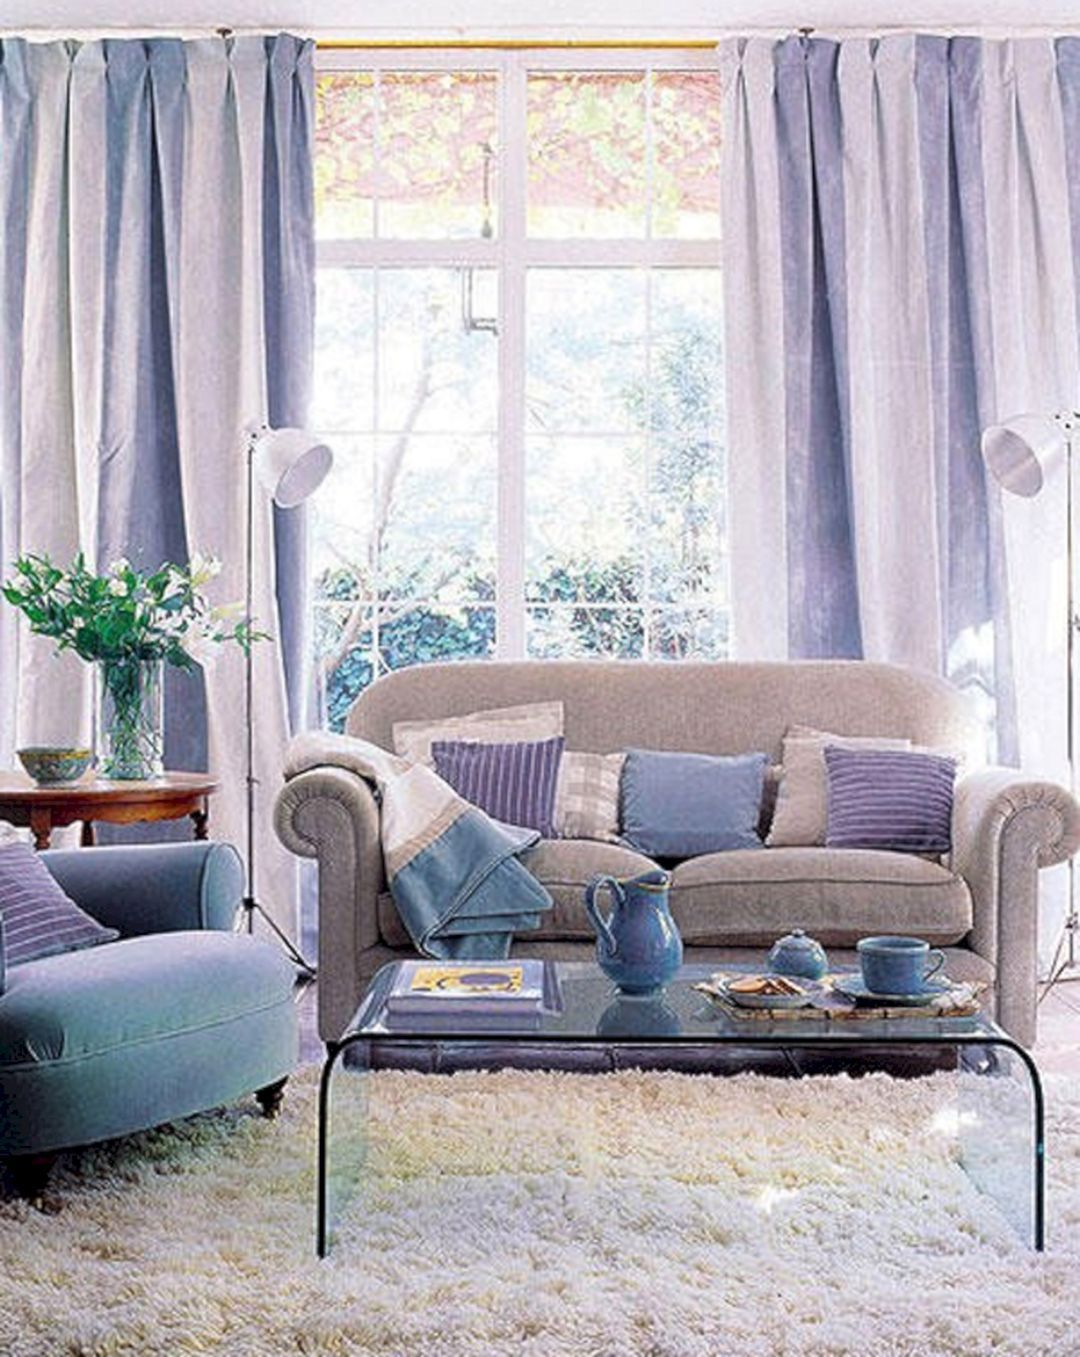 40 best modern decorating with pastel colors ideas on classy backyard design ideas may be you never think id=41411